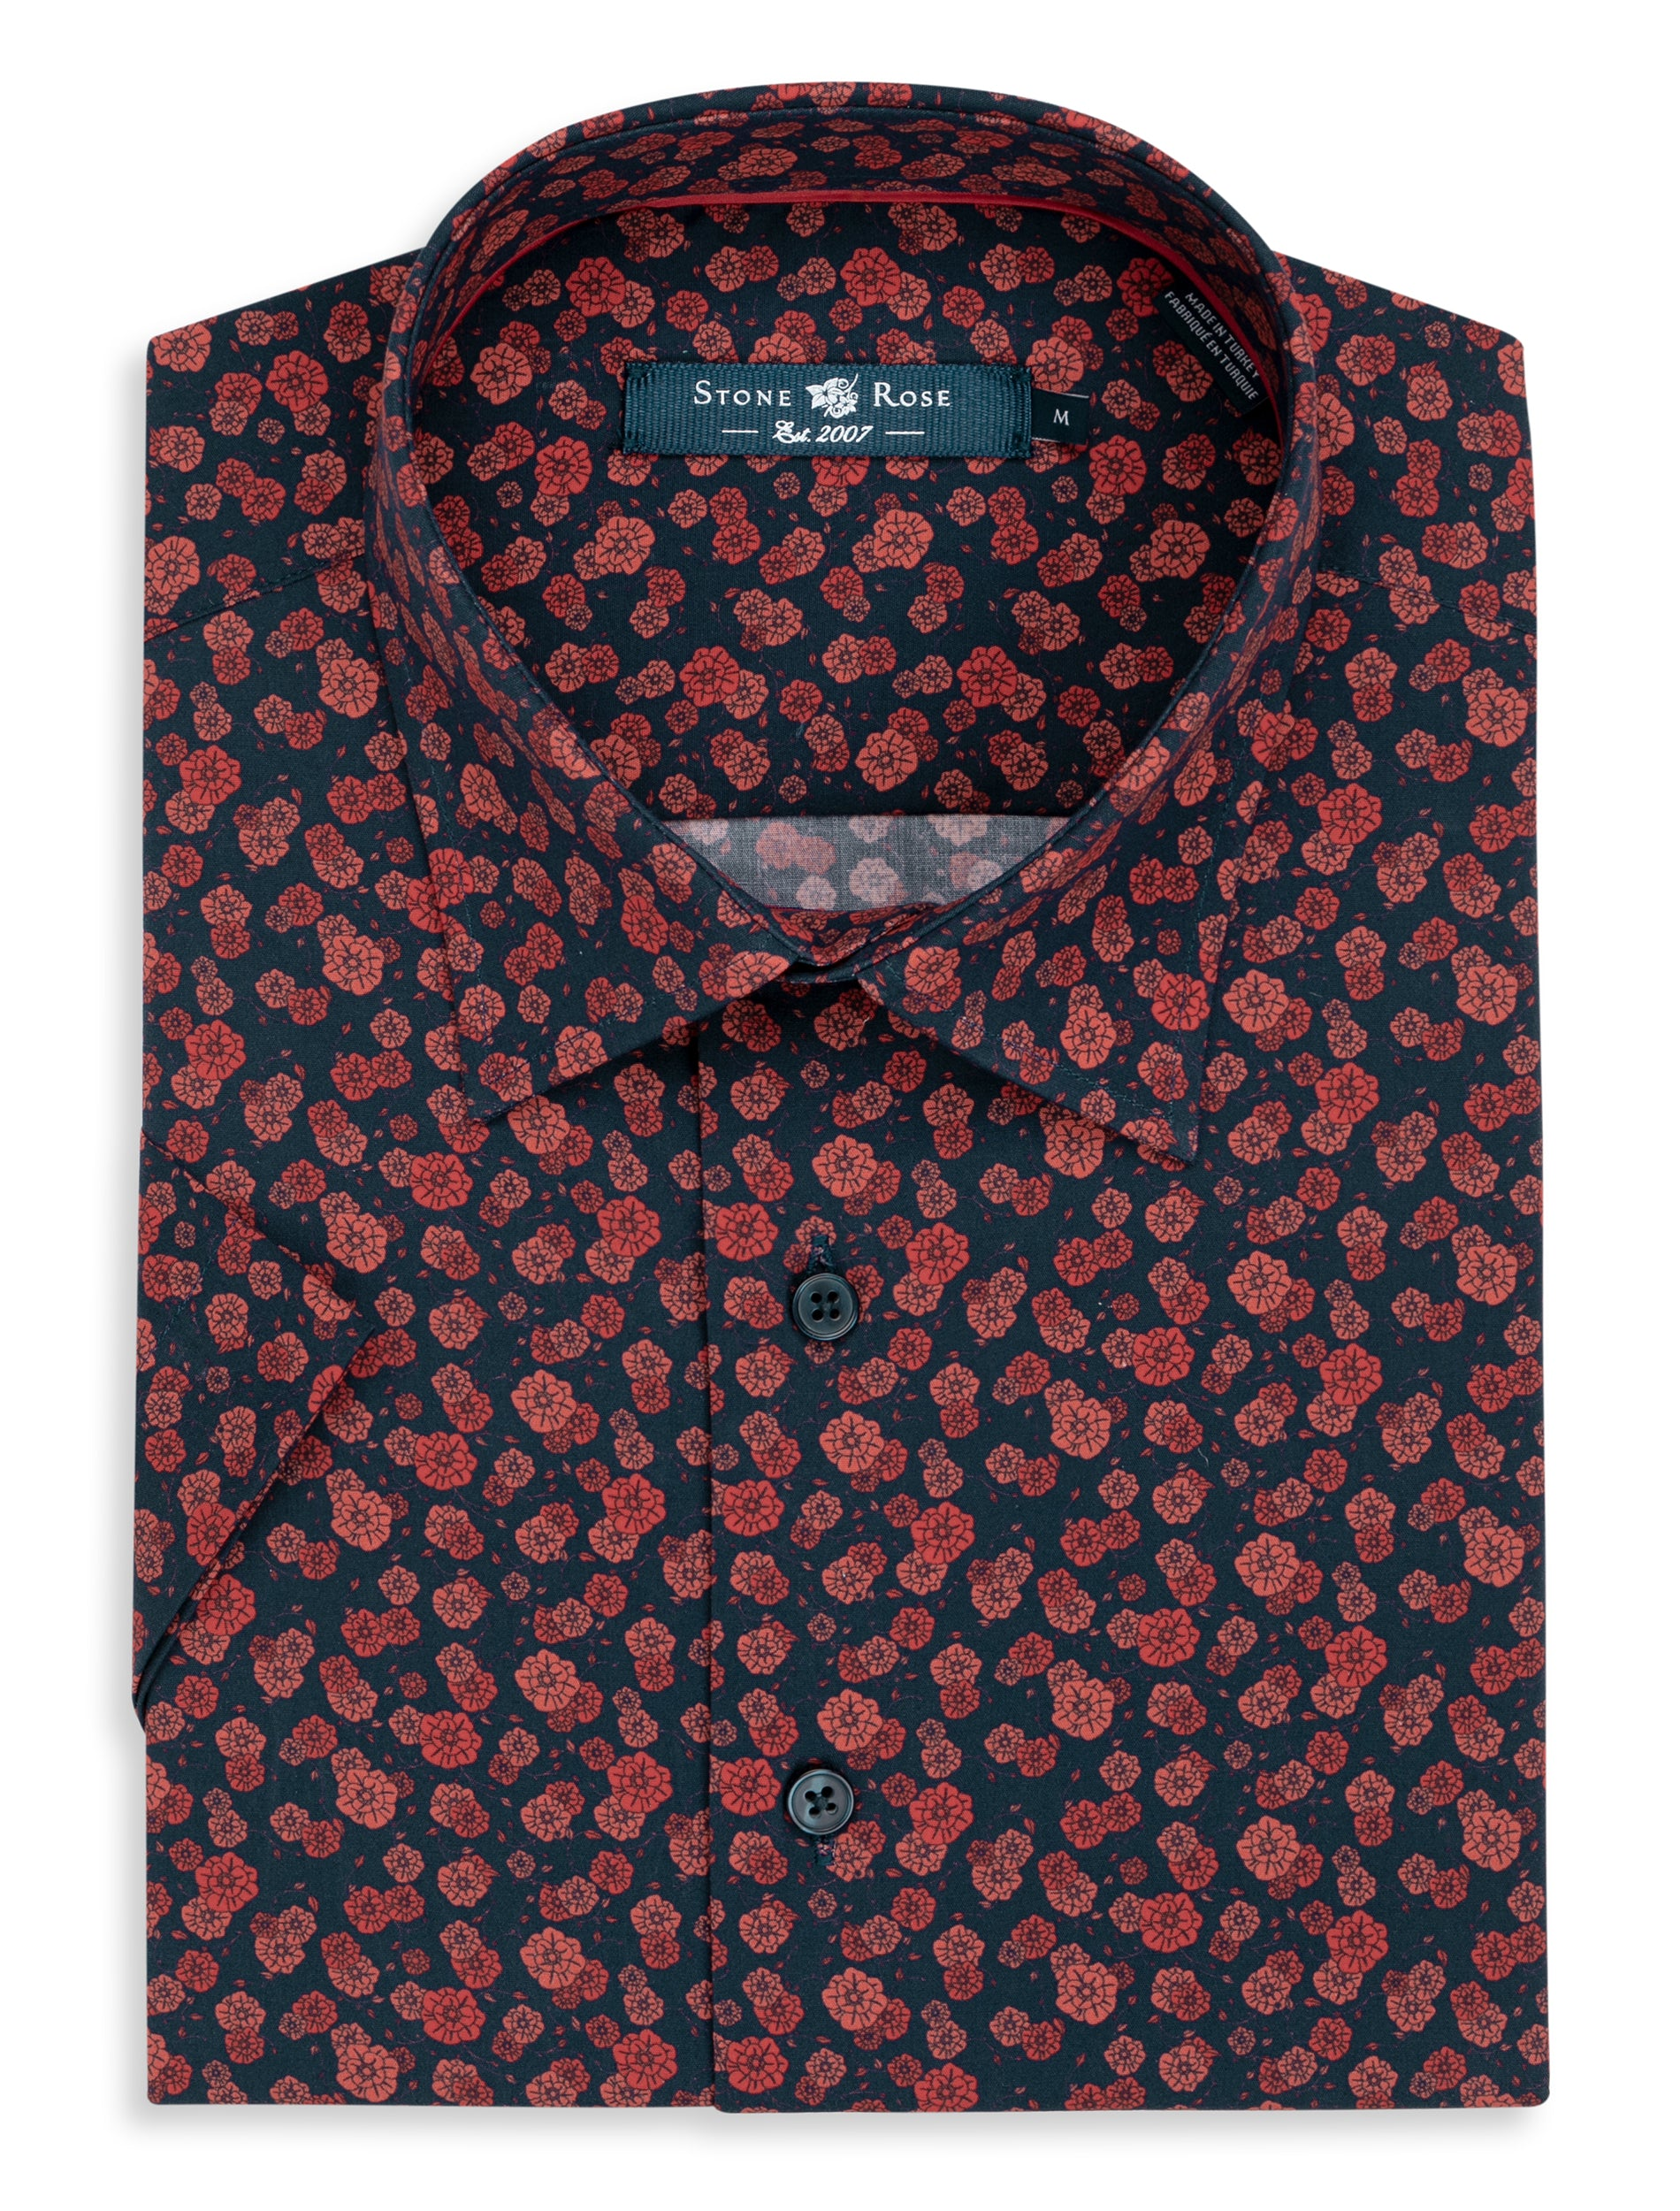 Orange Floral Print Short Sleeve Shirt-Stone Rose